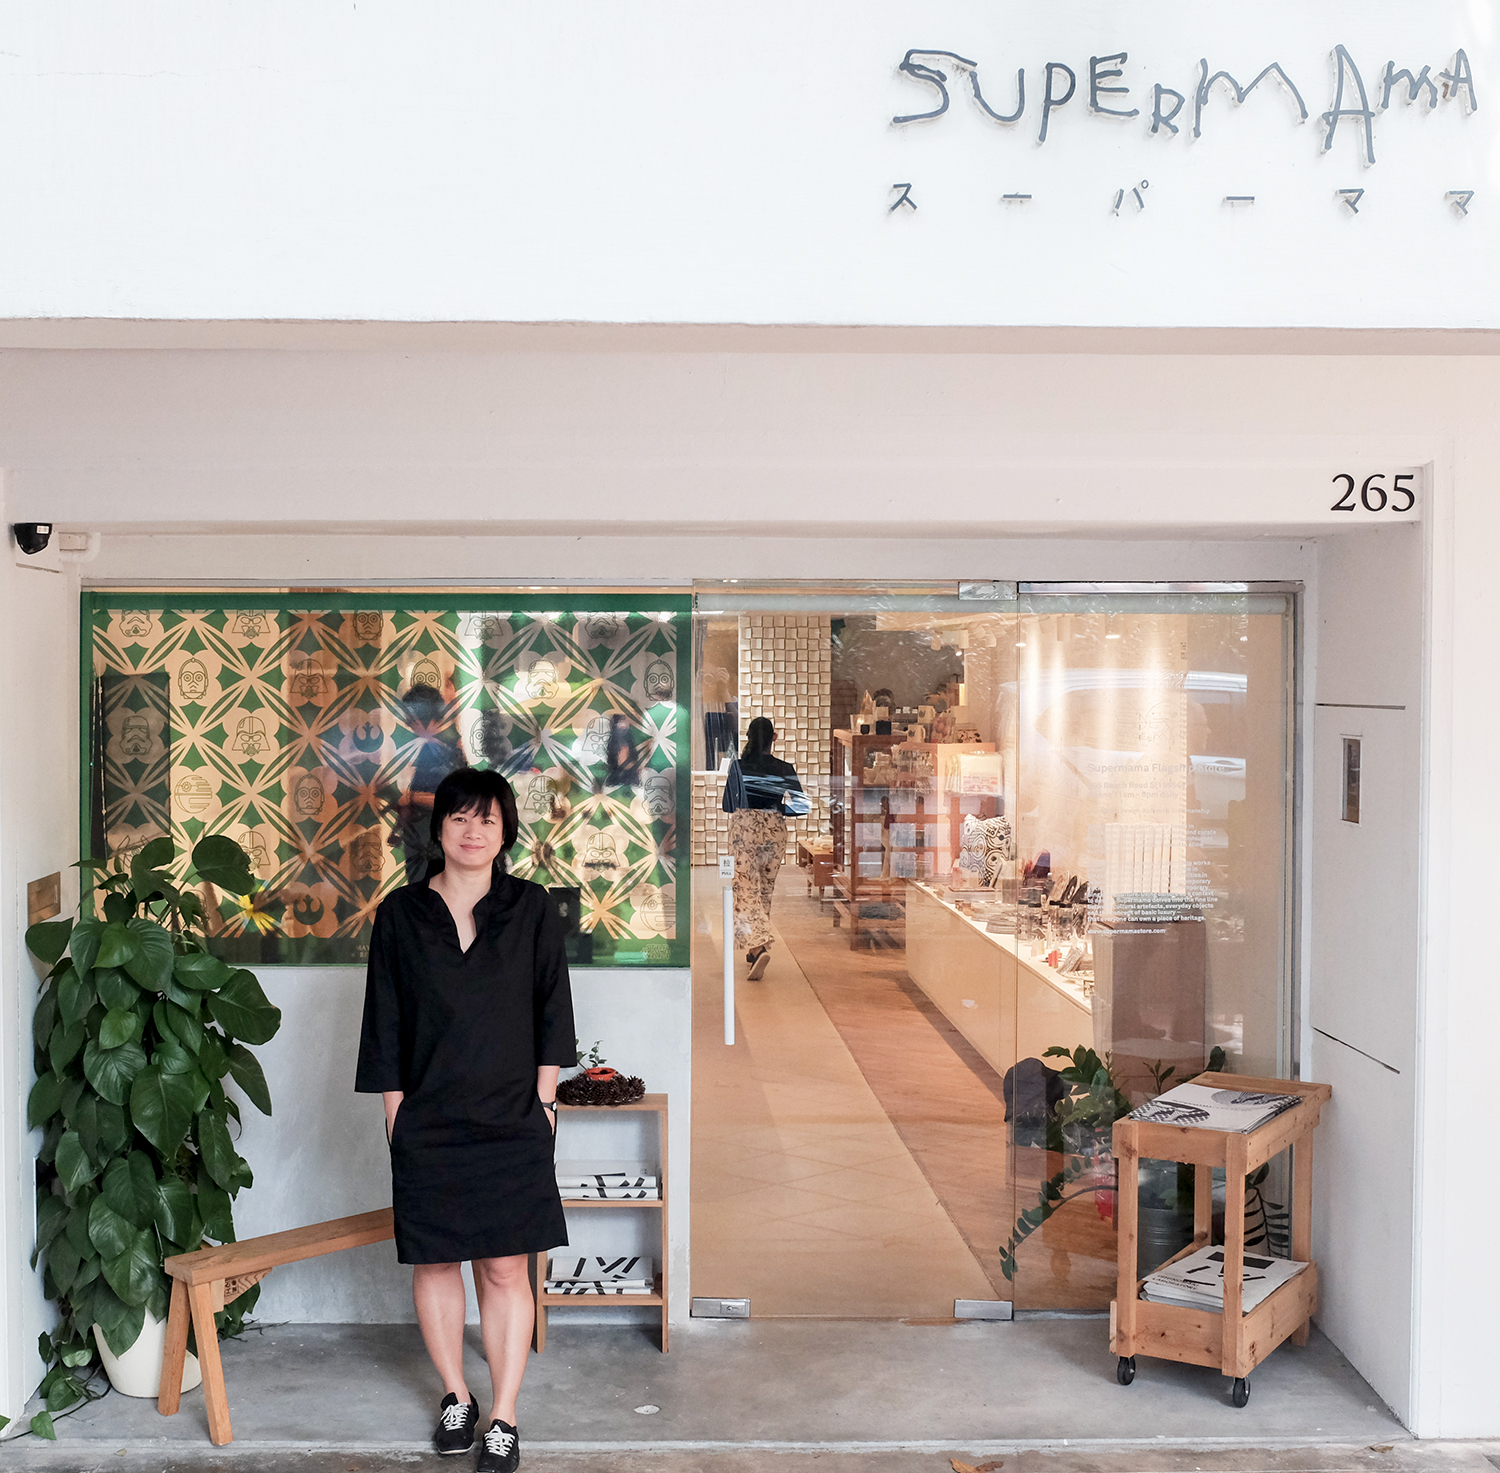 """The Beginning - """"Supermama started with us — Edwin and I — wanting to create a little haven for the city dwellers to slow down and appreciate a curation of well-designed and thoughtful objects. We started the shop wanting to steal more time for ourselves and for our family, and wanting to extend this spirit of slowing down and appreciation through designing a store that recognise those values.It started with a crazy dream… We were more than prepared to go back to work and shut down the business as we never thought the store could last more than a year."""""""